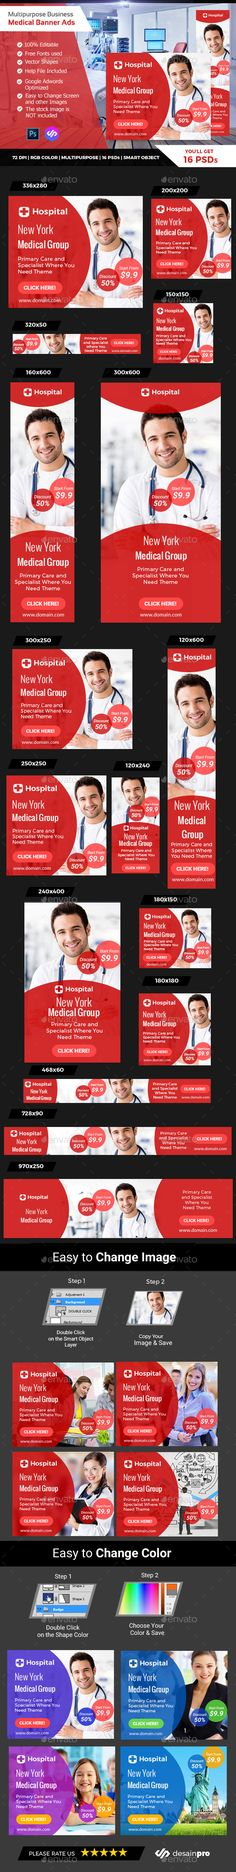 Red Doctor Medical Banner Ads - Banners & #Ads #Web #Elements Download here: https://graphicriver.net/item/red-doctor-medical-banner-ads/19742613?ref=alena994